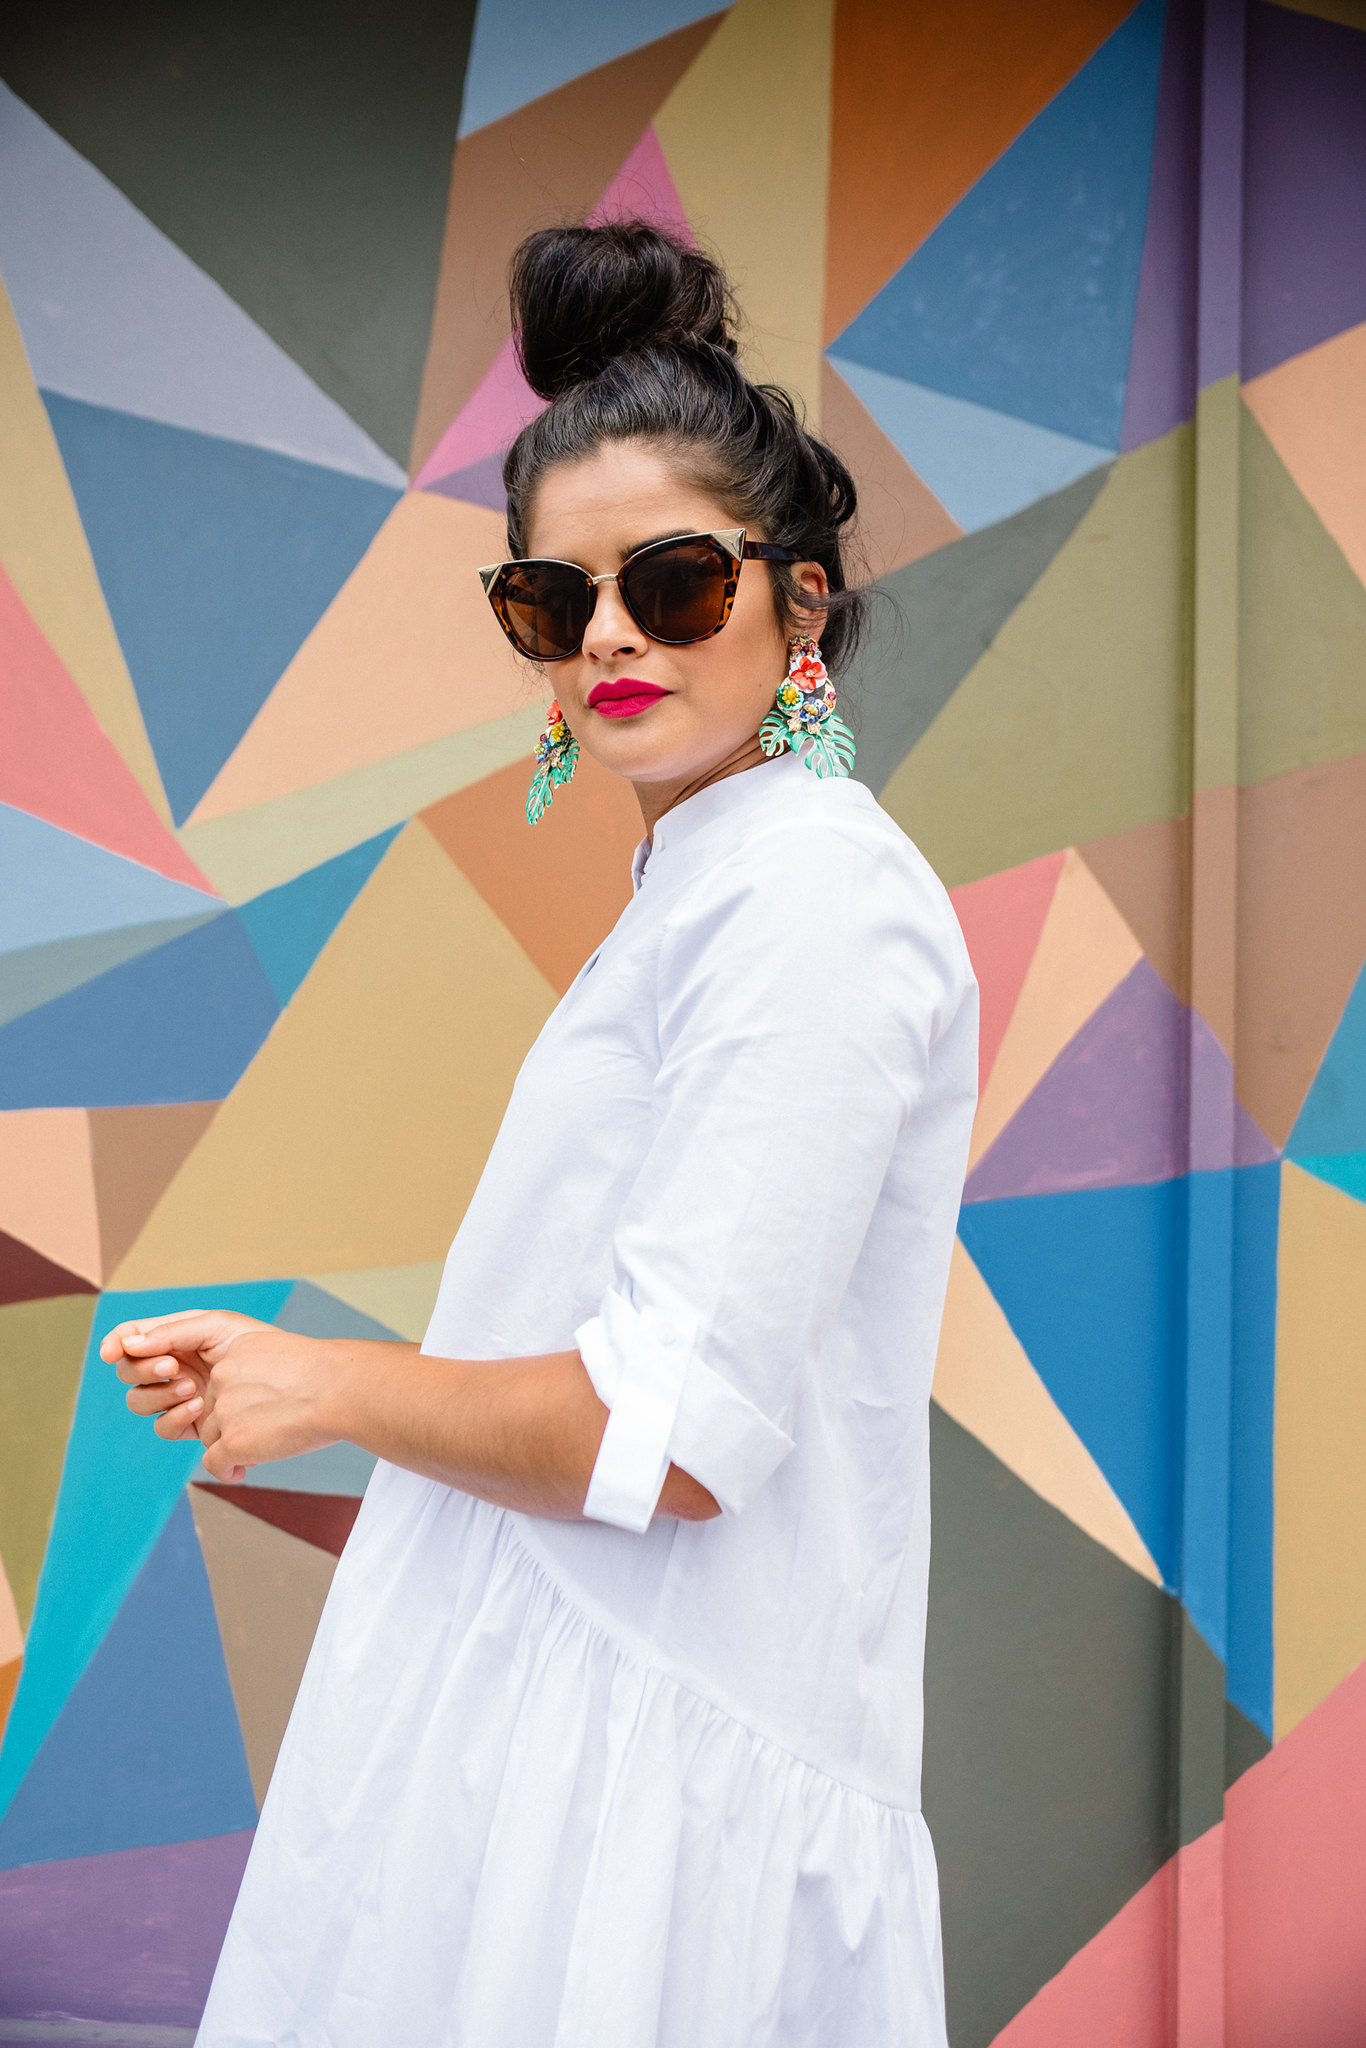 Priya the Blog, Nashville fashion blog, Nashville fashion blogger, Stila Liquid Lipstick in Bella, Zara Statement Earrings, tropical earrings, Zara white button-up swing dress, pink clogs, pink Swedish Hasbeens, summer outfit, Summer office outfit, Summer wear to work outfit,